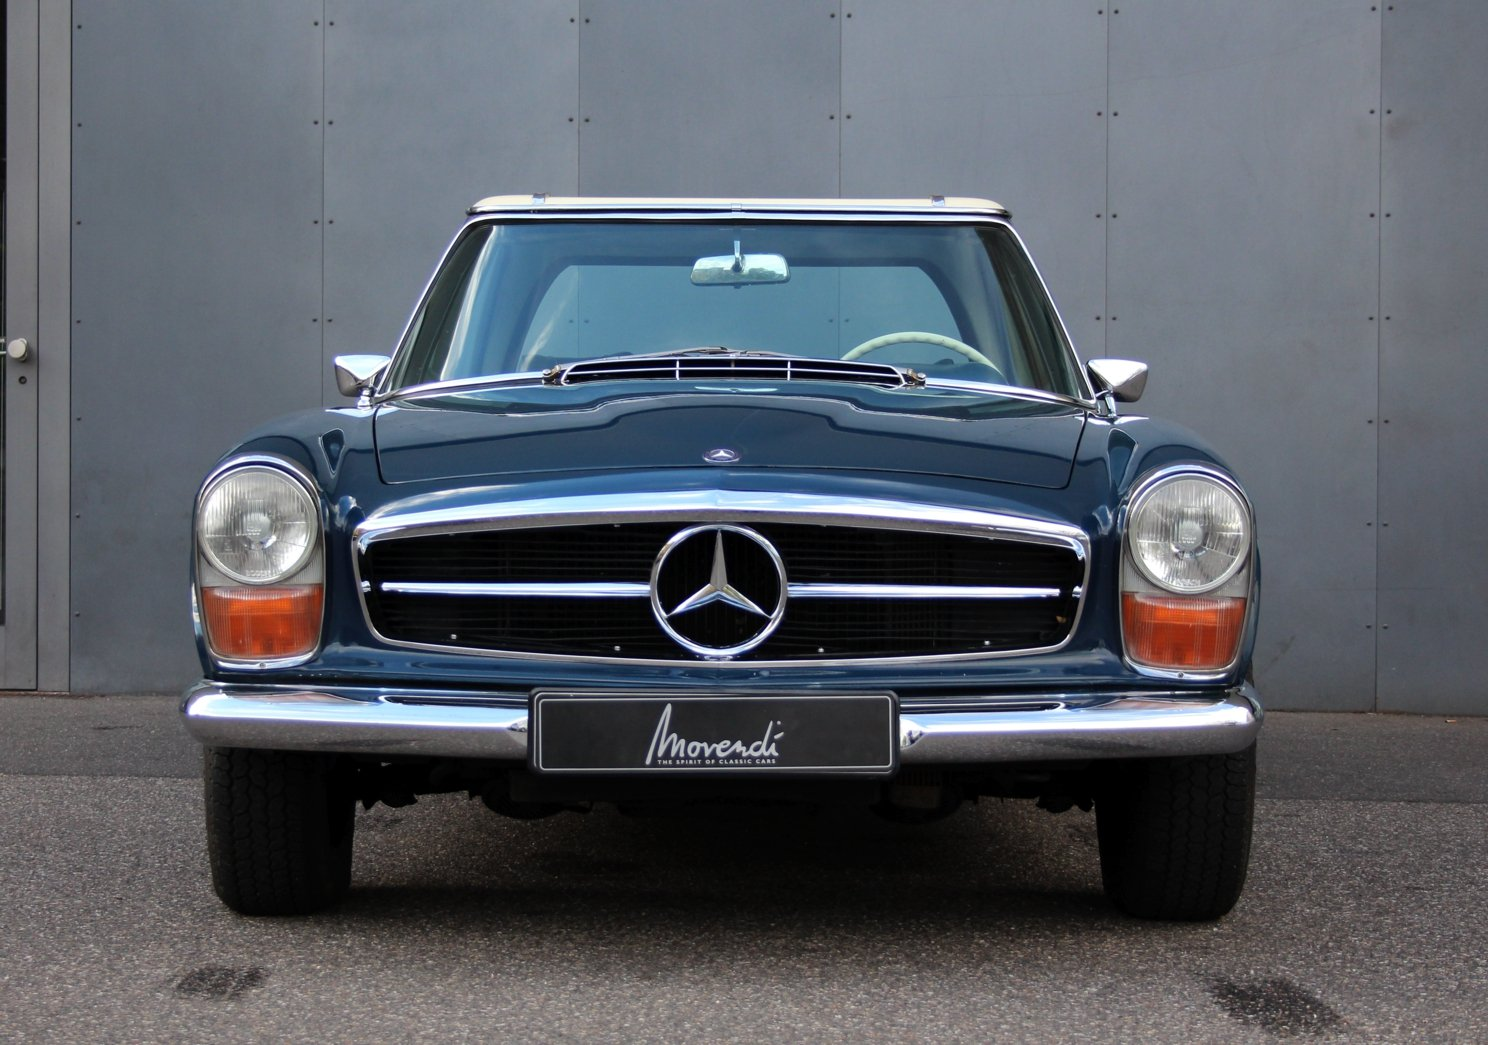 1963 Mercedes-Benz 280 SL Pagoda LHD (Automatic transmission) For Sale (picture 6 of 6)